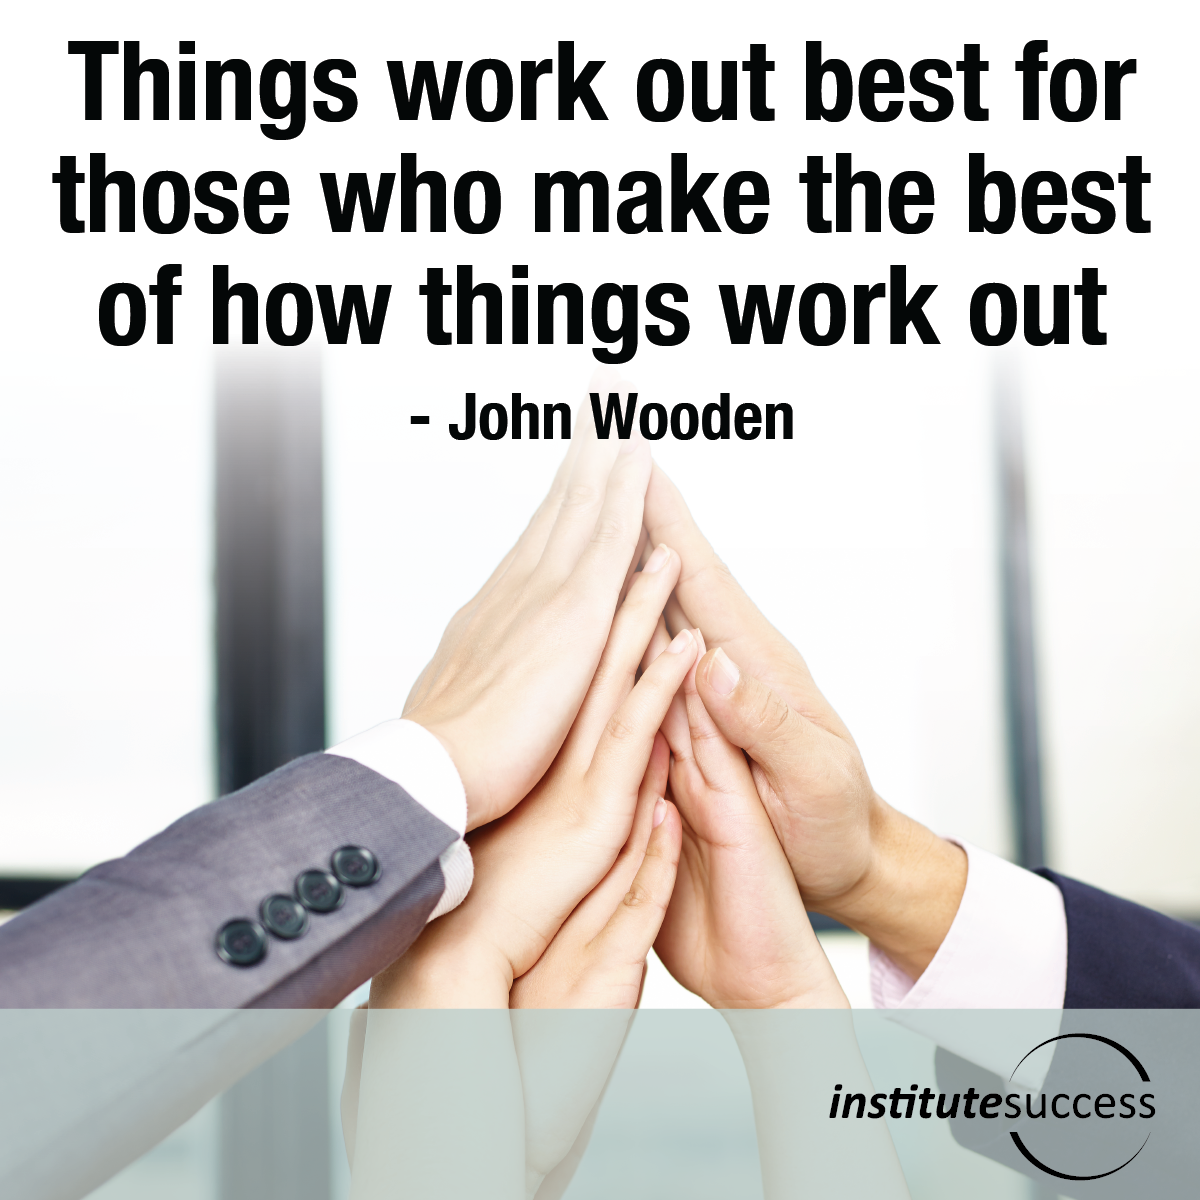 Things work out best for those who make the best of how things work out – John Wooden